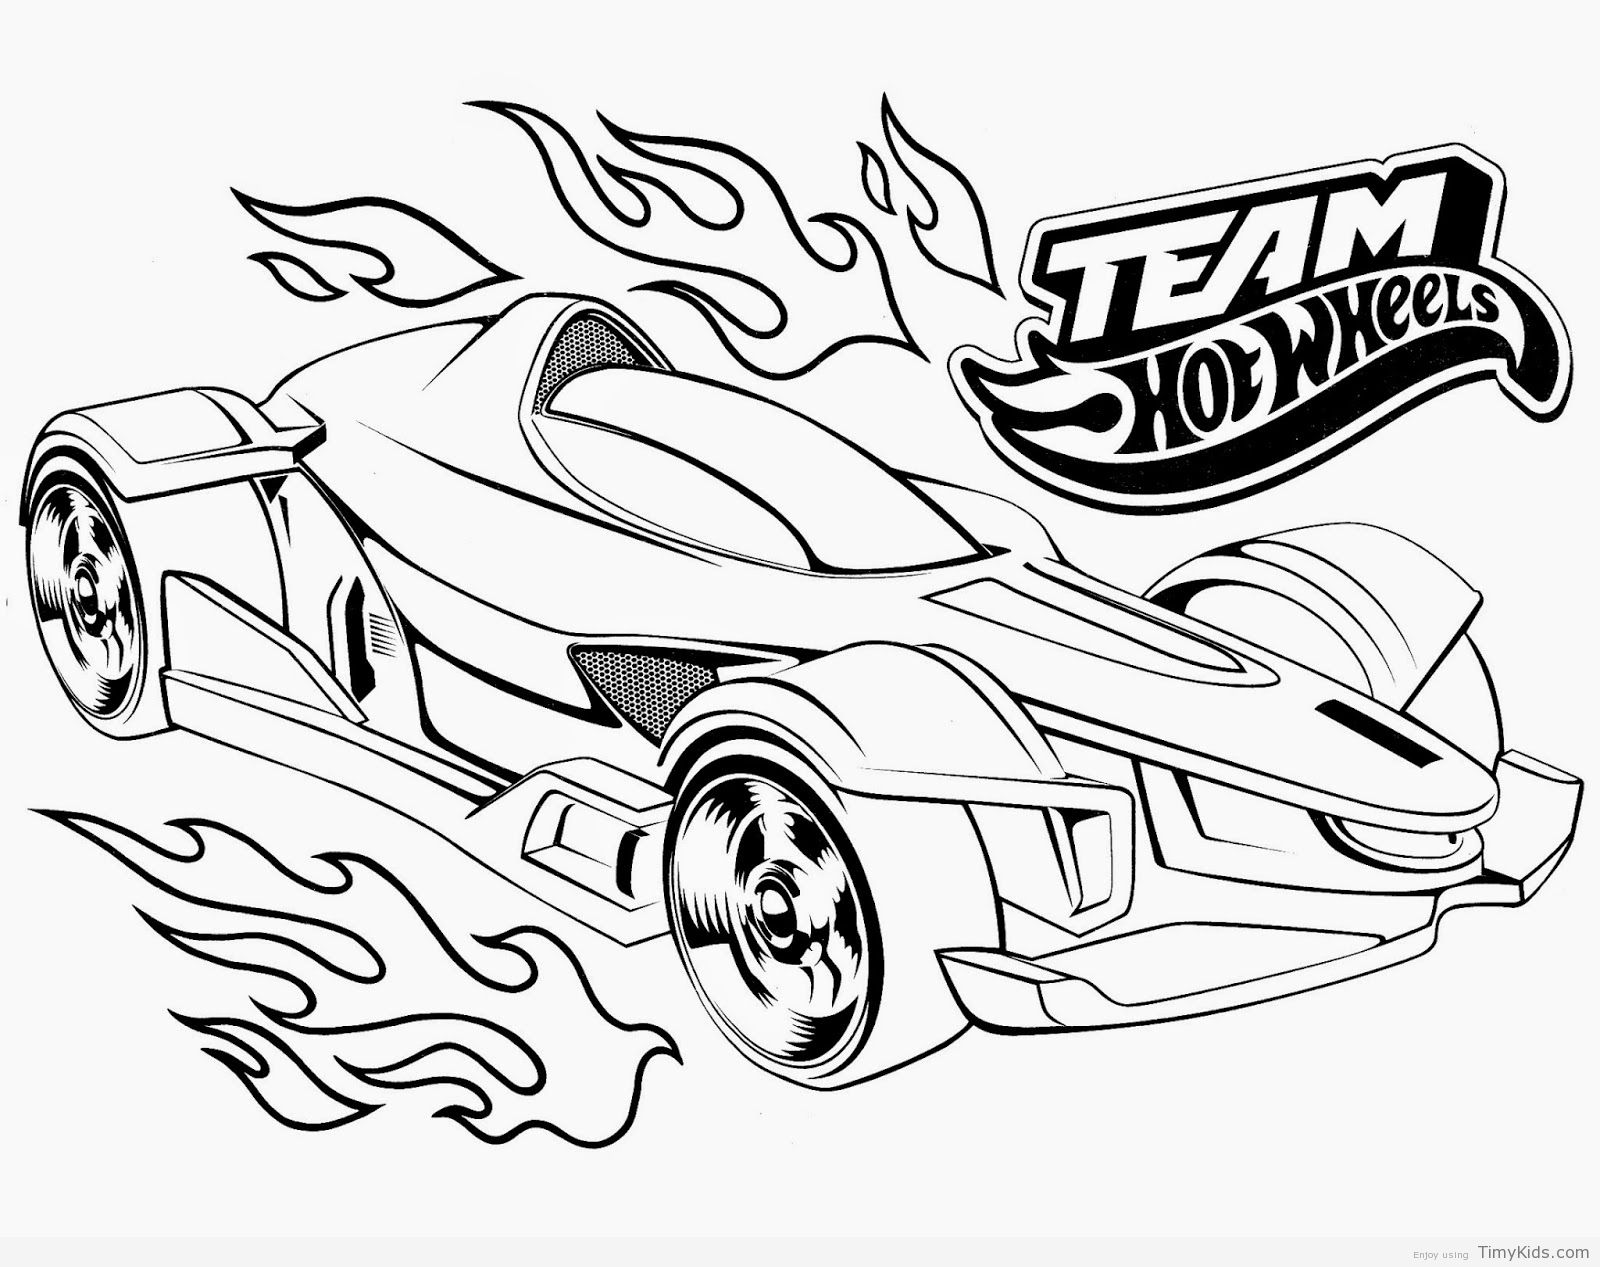 Ausmalbilder Lightning Mcqueen Cars 2 : Http Timykids Com Matchbox Cars Coloring Pages Html Colorings